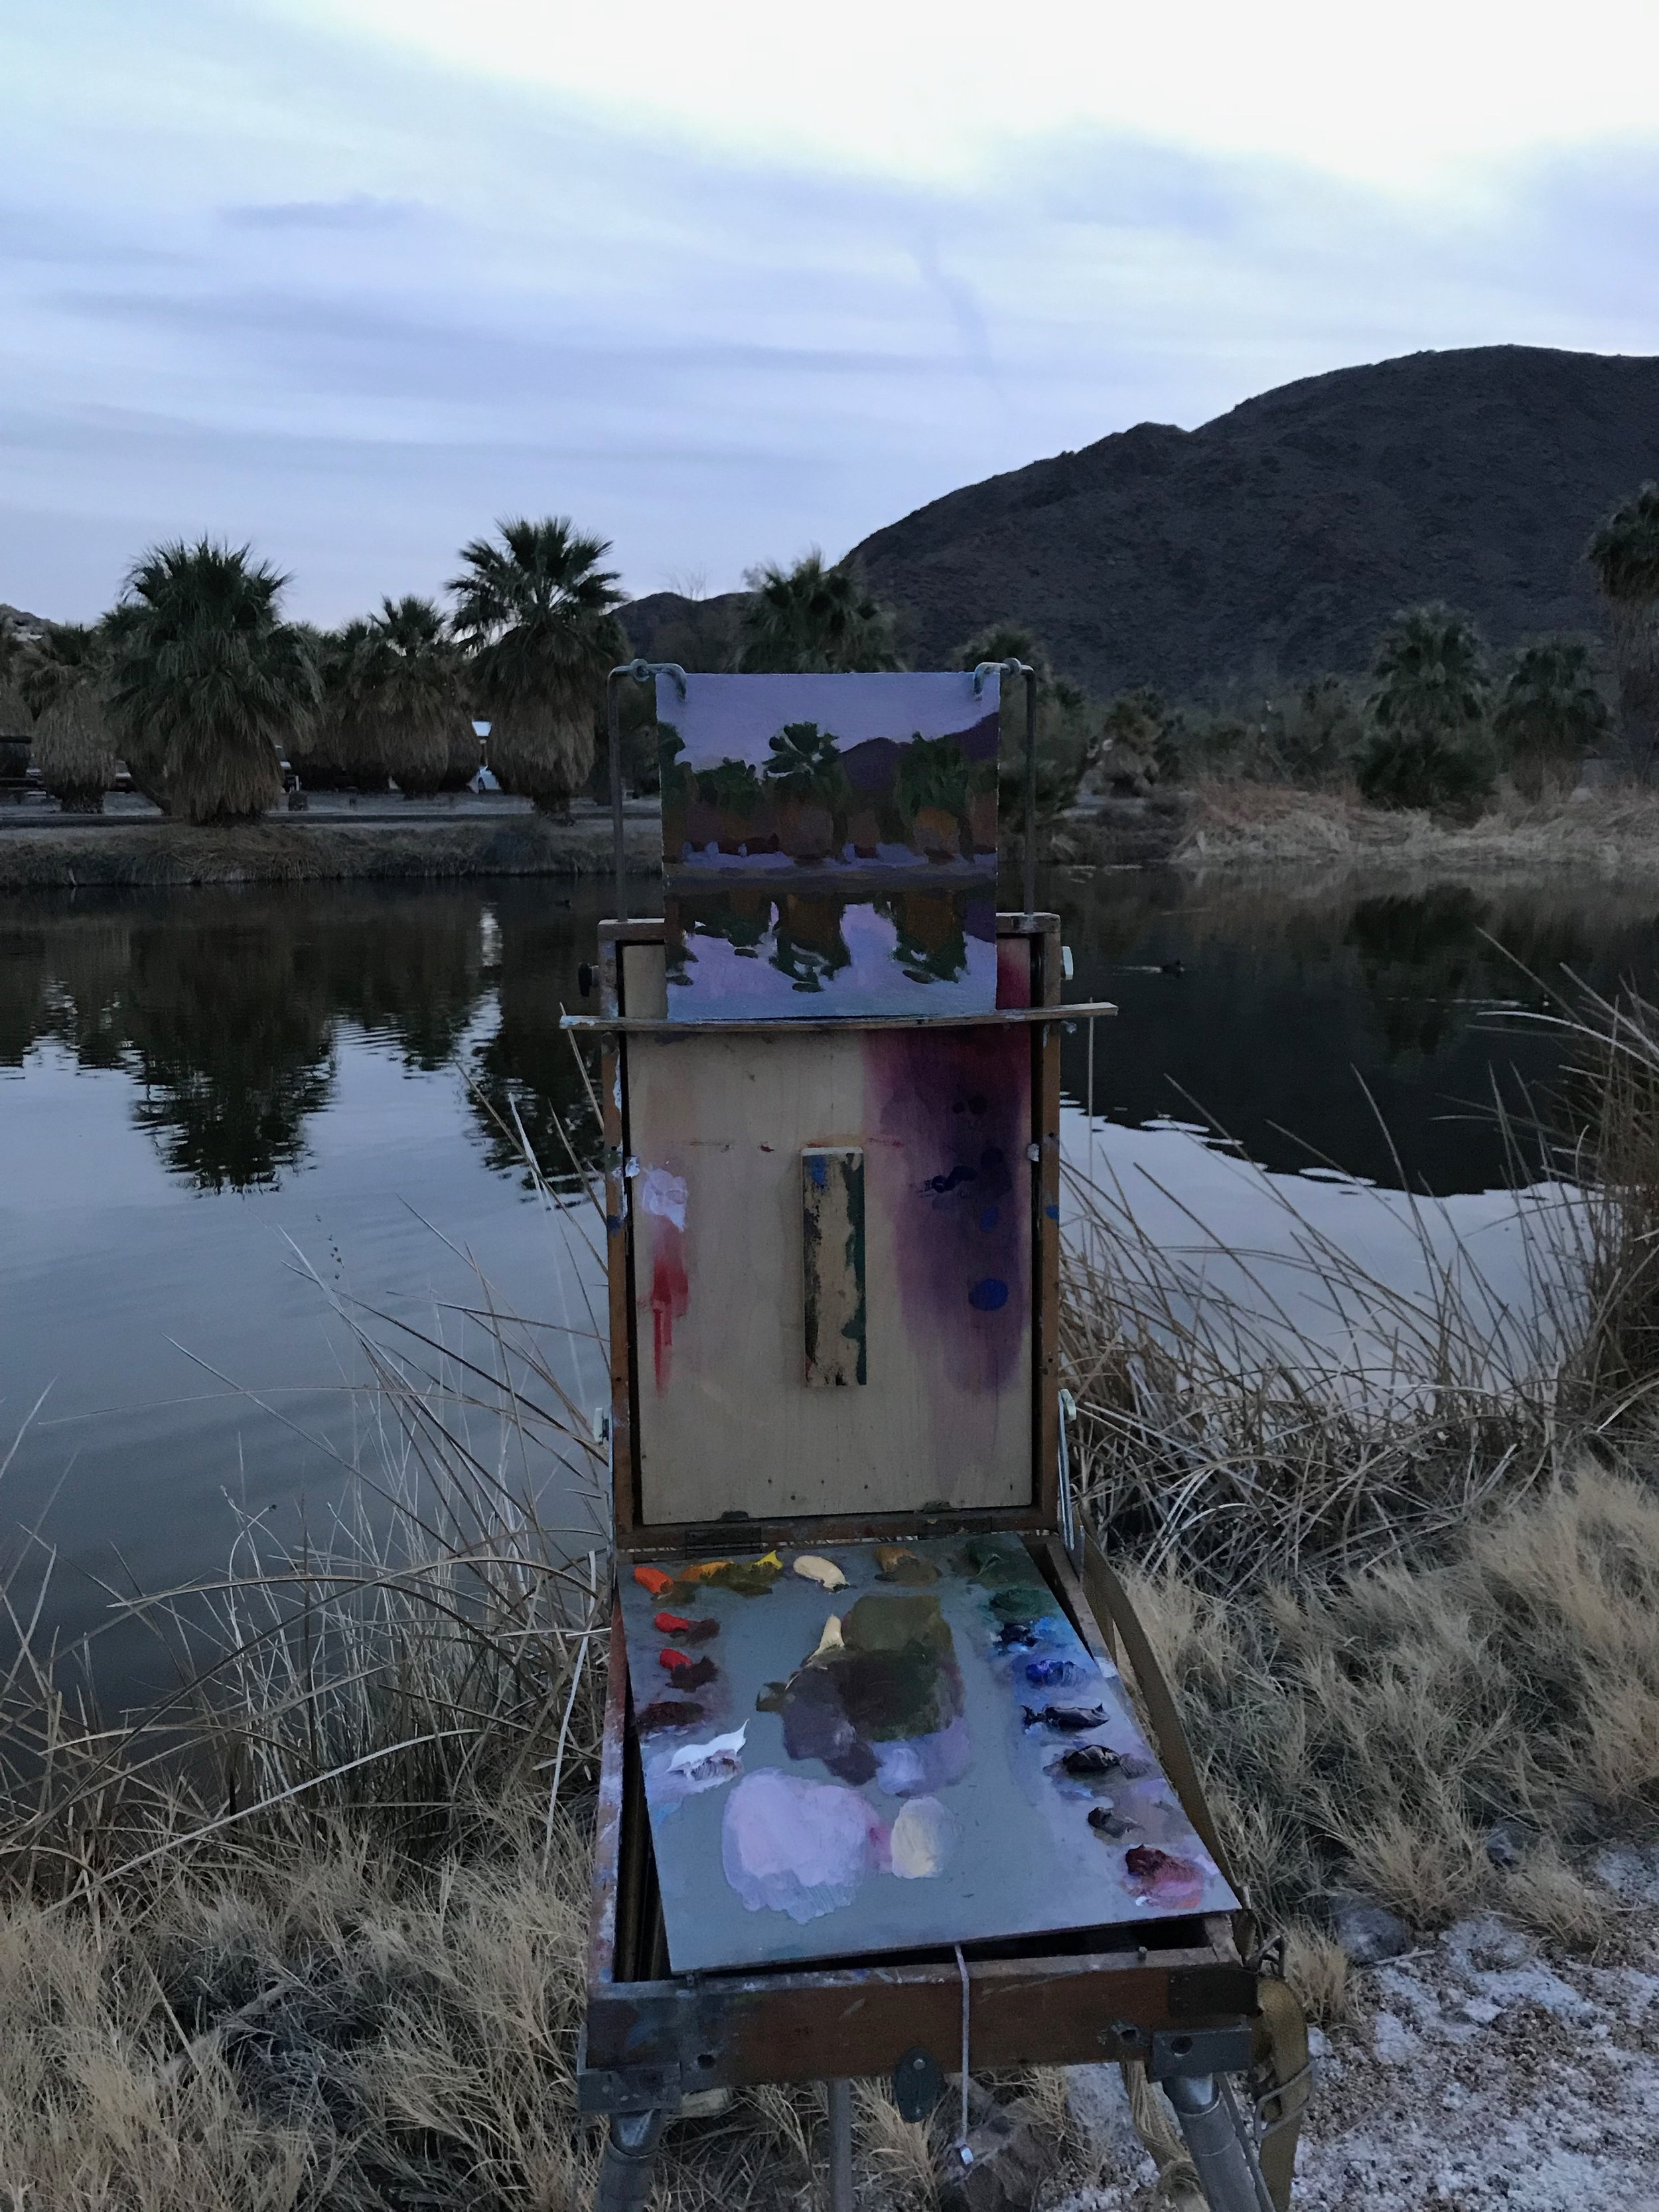 Painting at dusk. The pond at this oasis was man-made, but is fed by natural water sources.